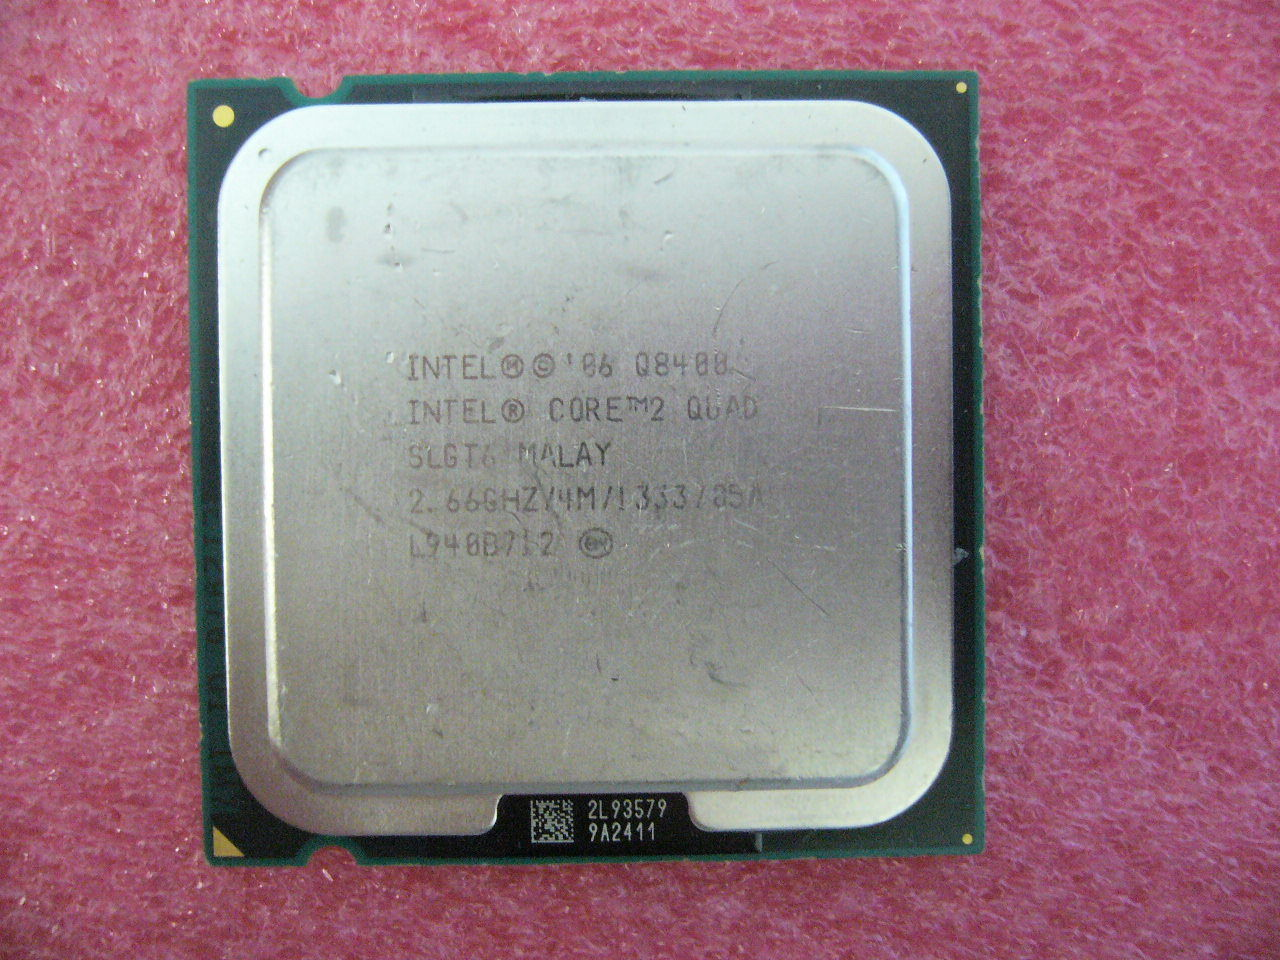 QTY 1x INTEL Core2 Quad Q8400 CPU 2.66GHz/4MB/1333Mhz LGA775 SLGT6